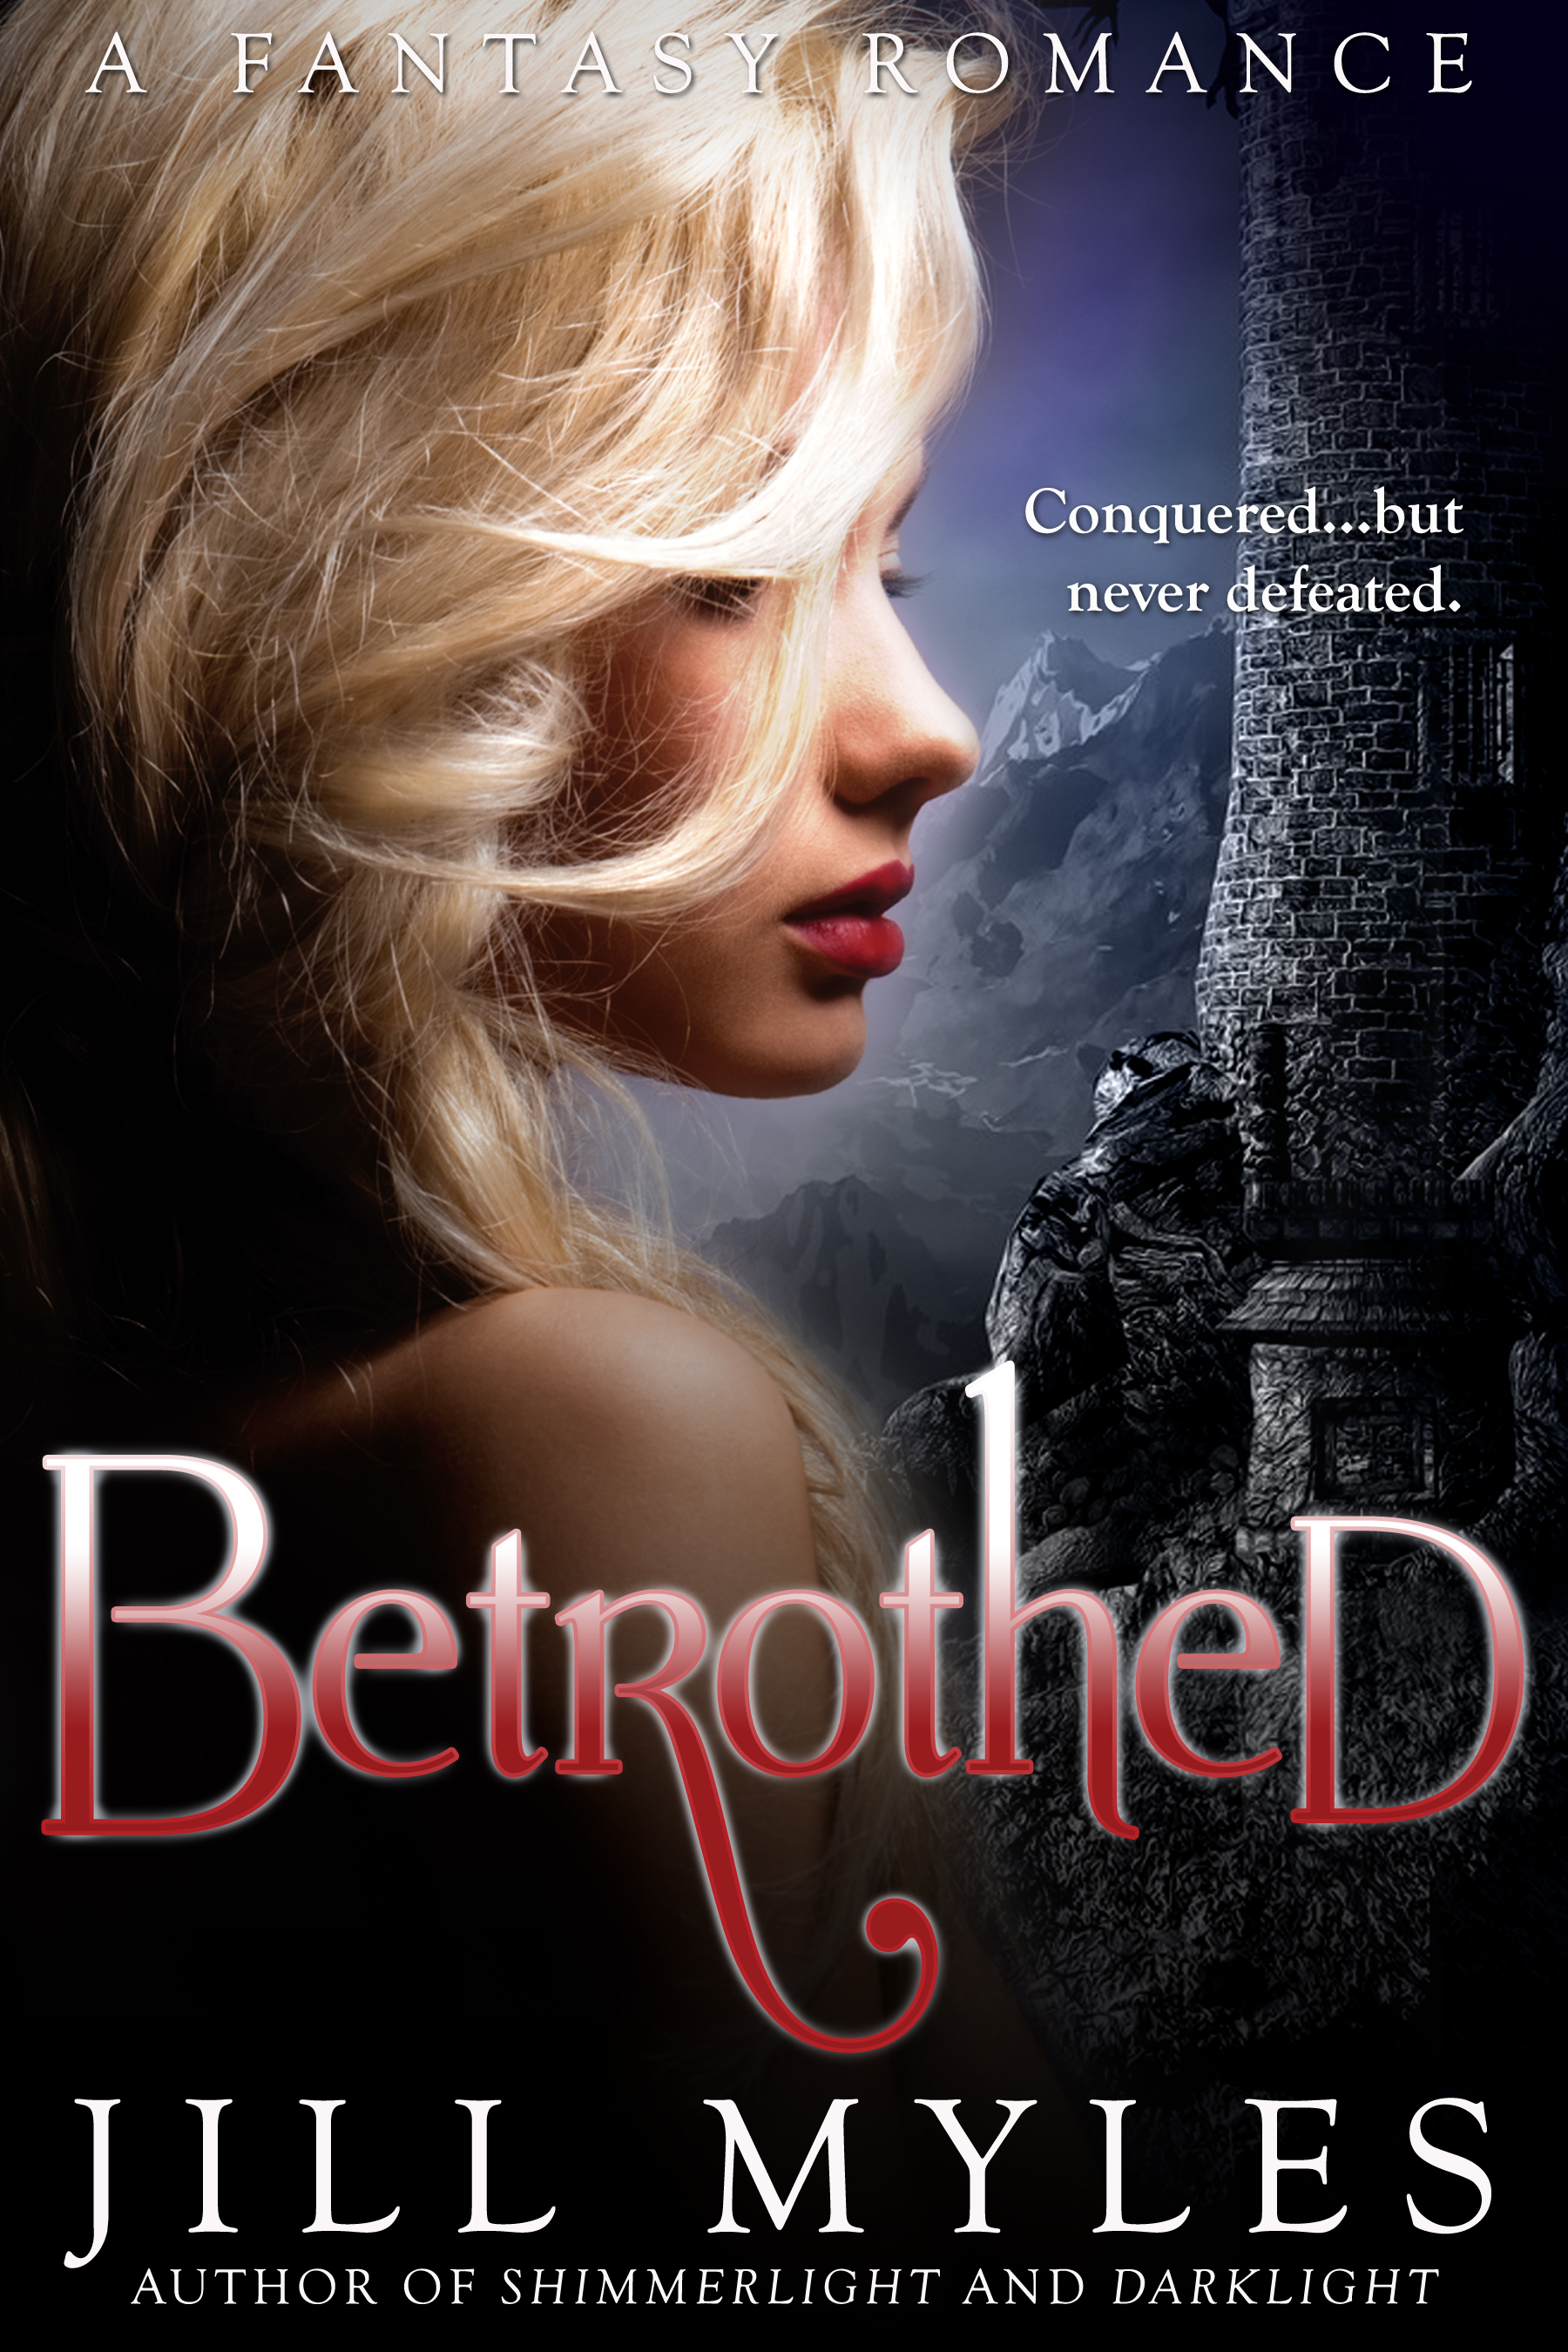 Jill Myles - Betrothed